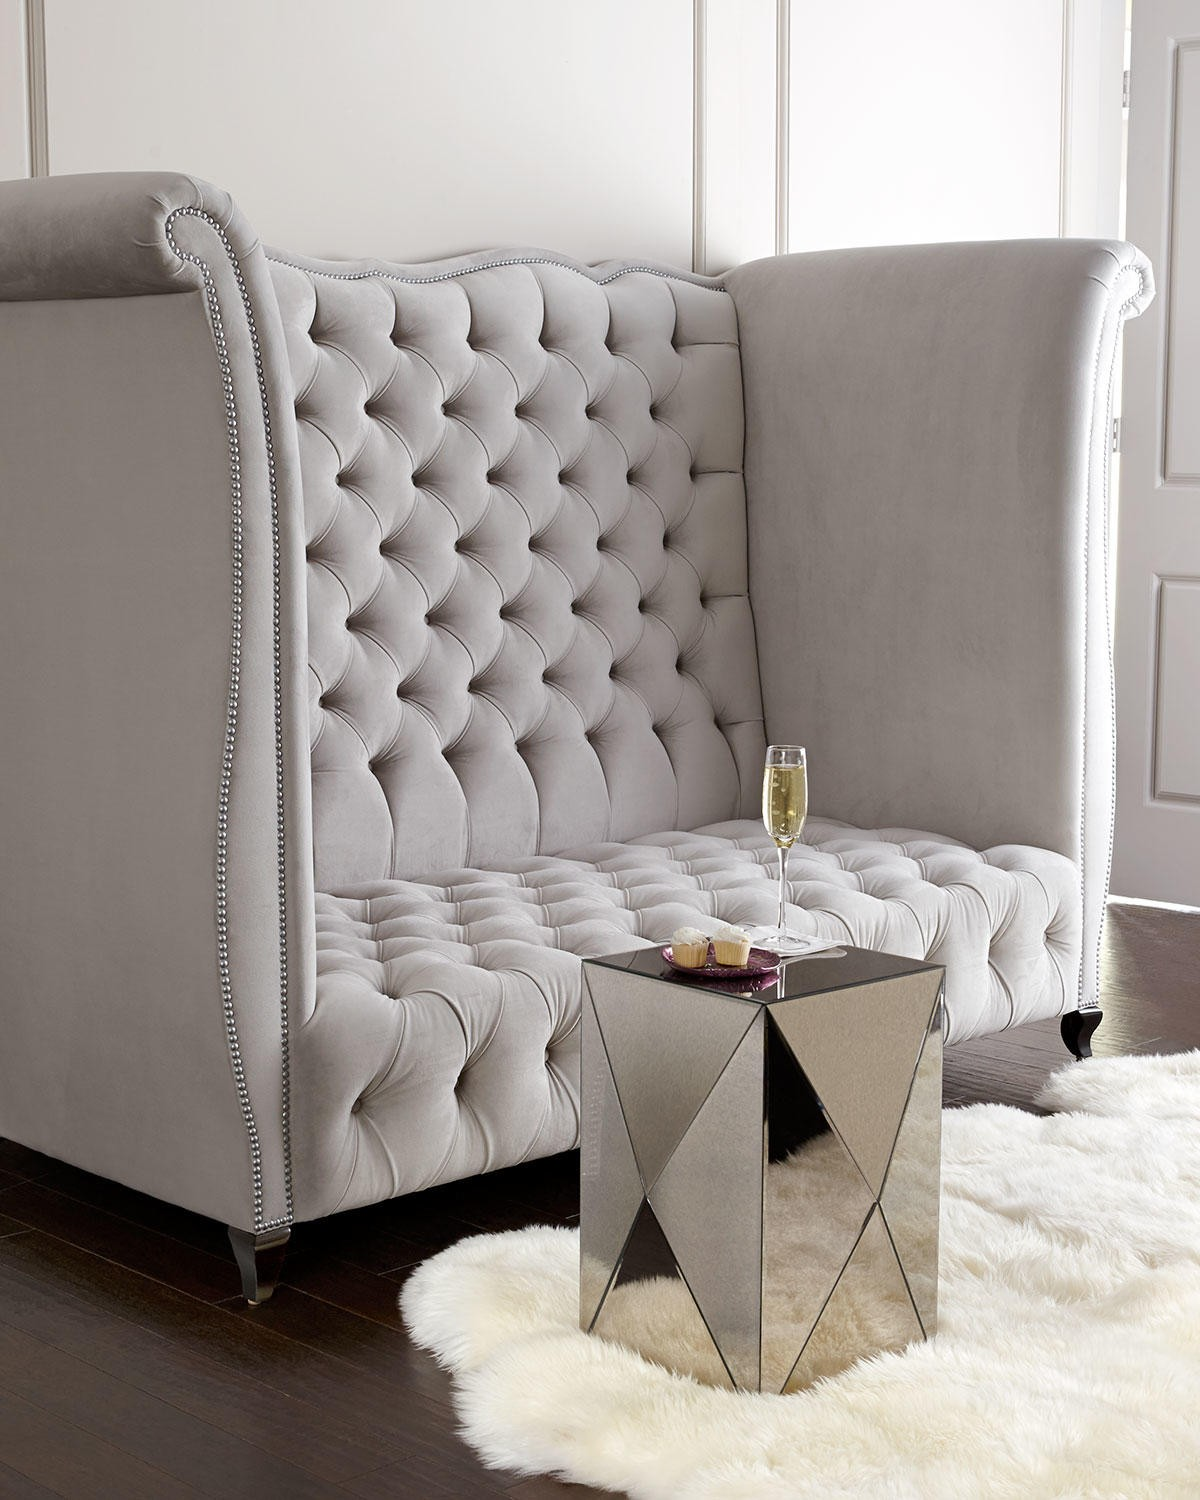 Prime High Back Tufted Sofa Ideas On Foter Download Free Architecture Designs Scobabritishbridgeorg